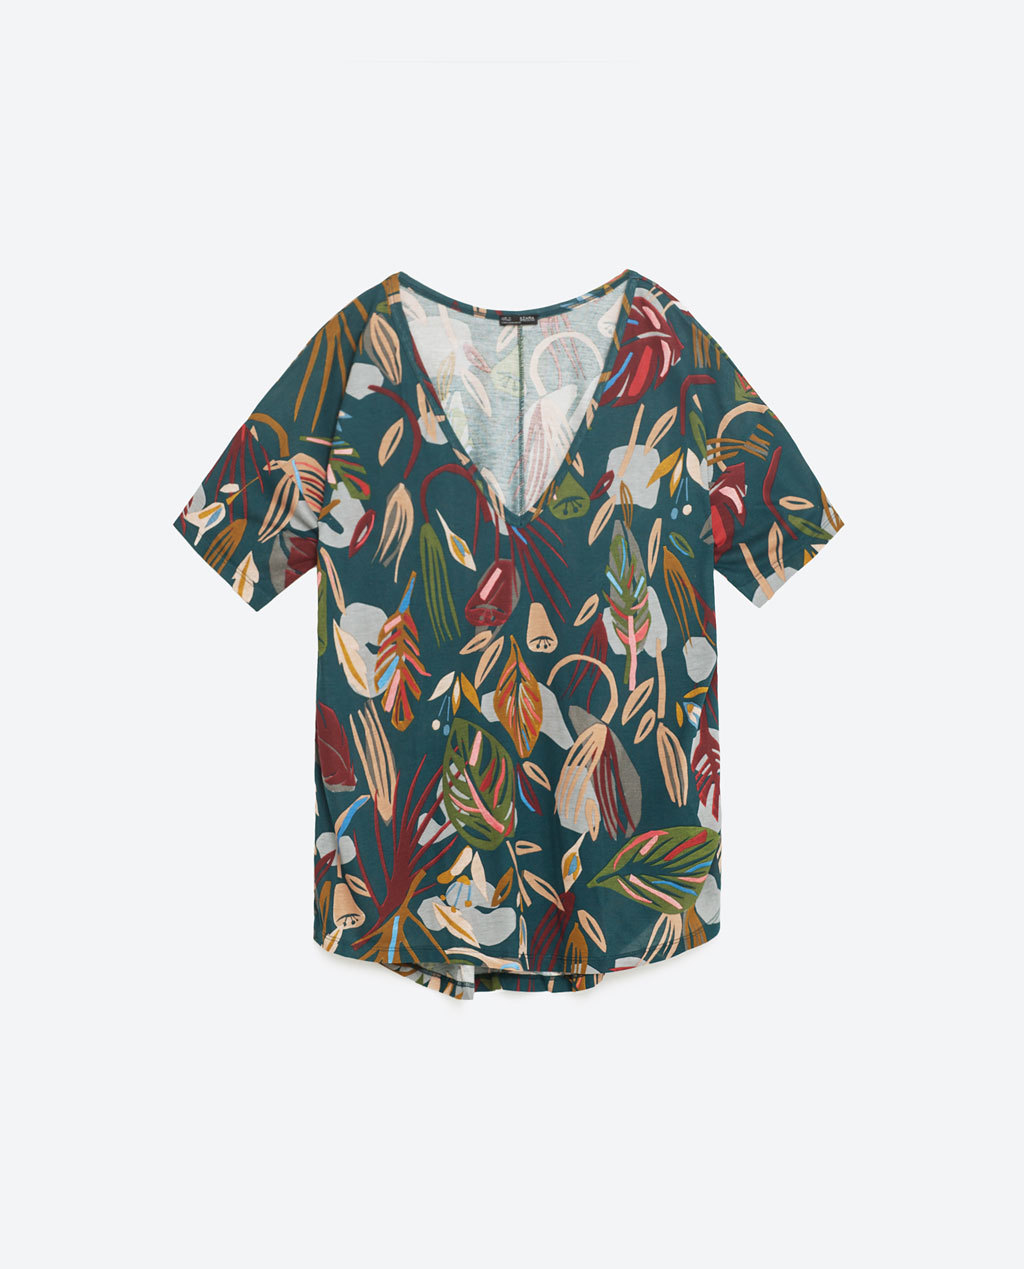 Floral Print T Shirt - neckline: low v-neck; style: t-shirt; secondary colour: burgundy; predominant colour: teal; occasions: casual; length: standard; fibres: cotton - stretch; fit: loose; sleeve length: short sleeve; sleeve style: standard; pattern type: fabric; pattern: florals; texture group: jersey - stretchy/drapey; pattern size: big & busy (top); multicoloured: multicoloured; season: s/s 2016; wardrobe: highlight